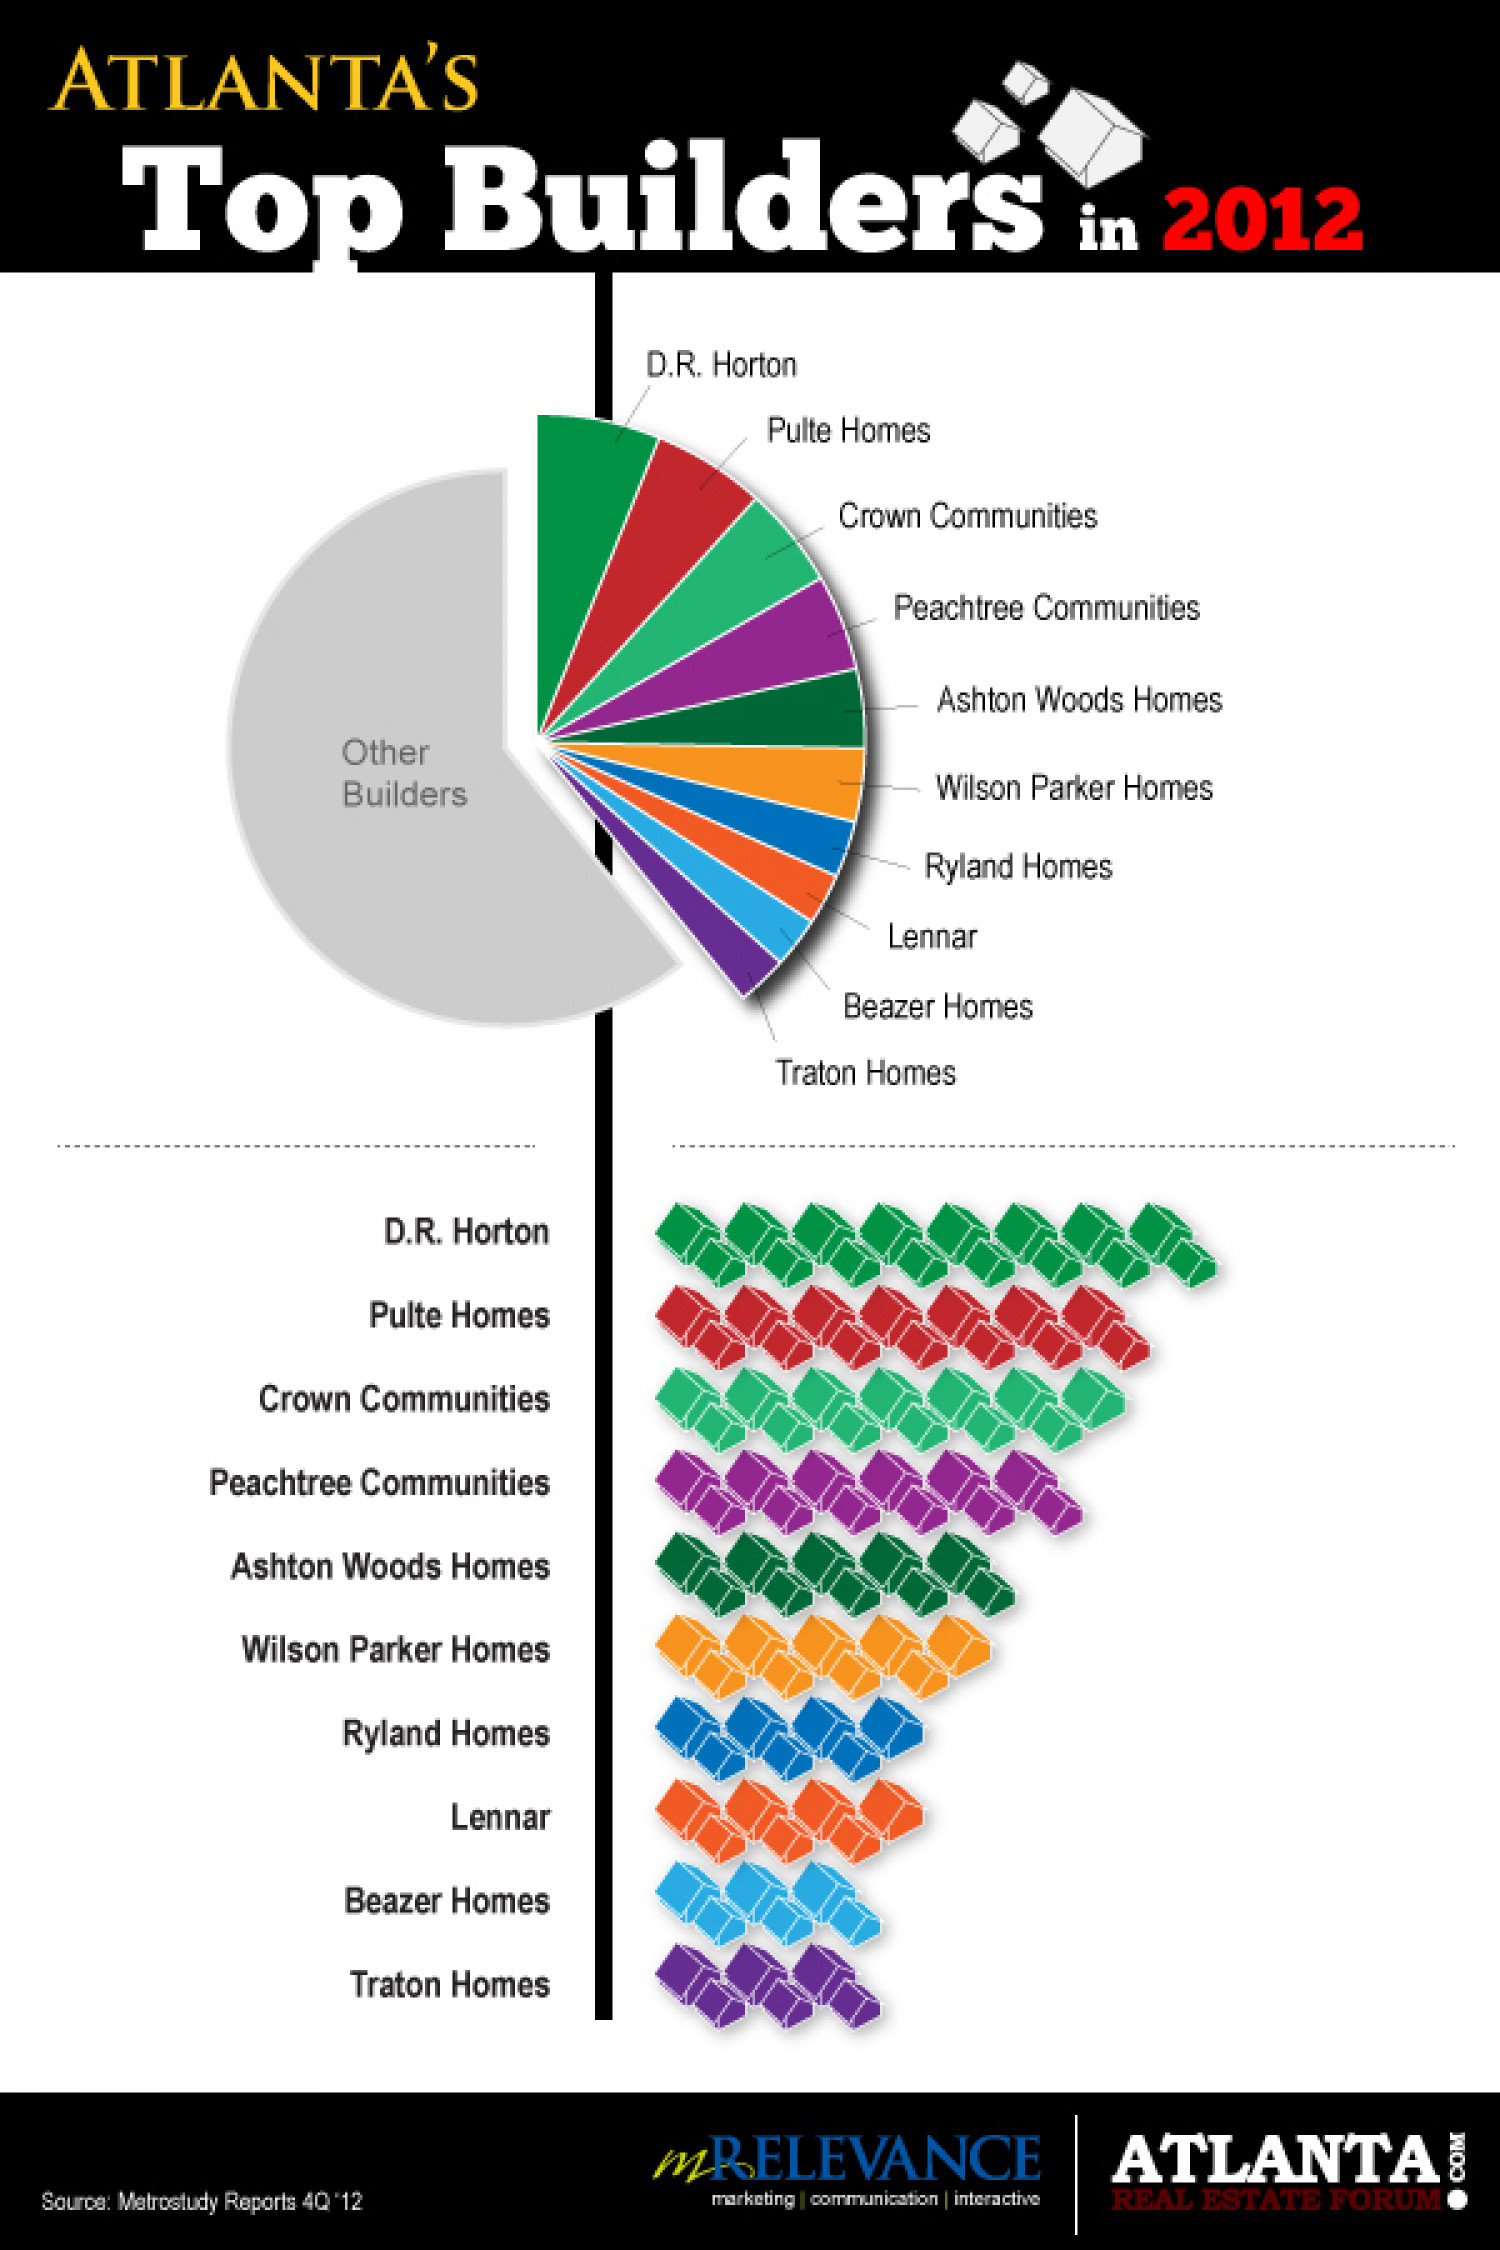 Atlanta's Top Home Builders in 2012 Infographic